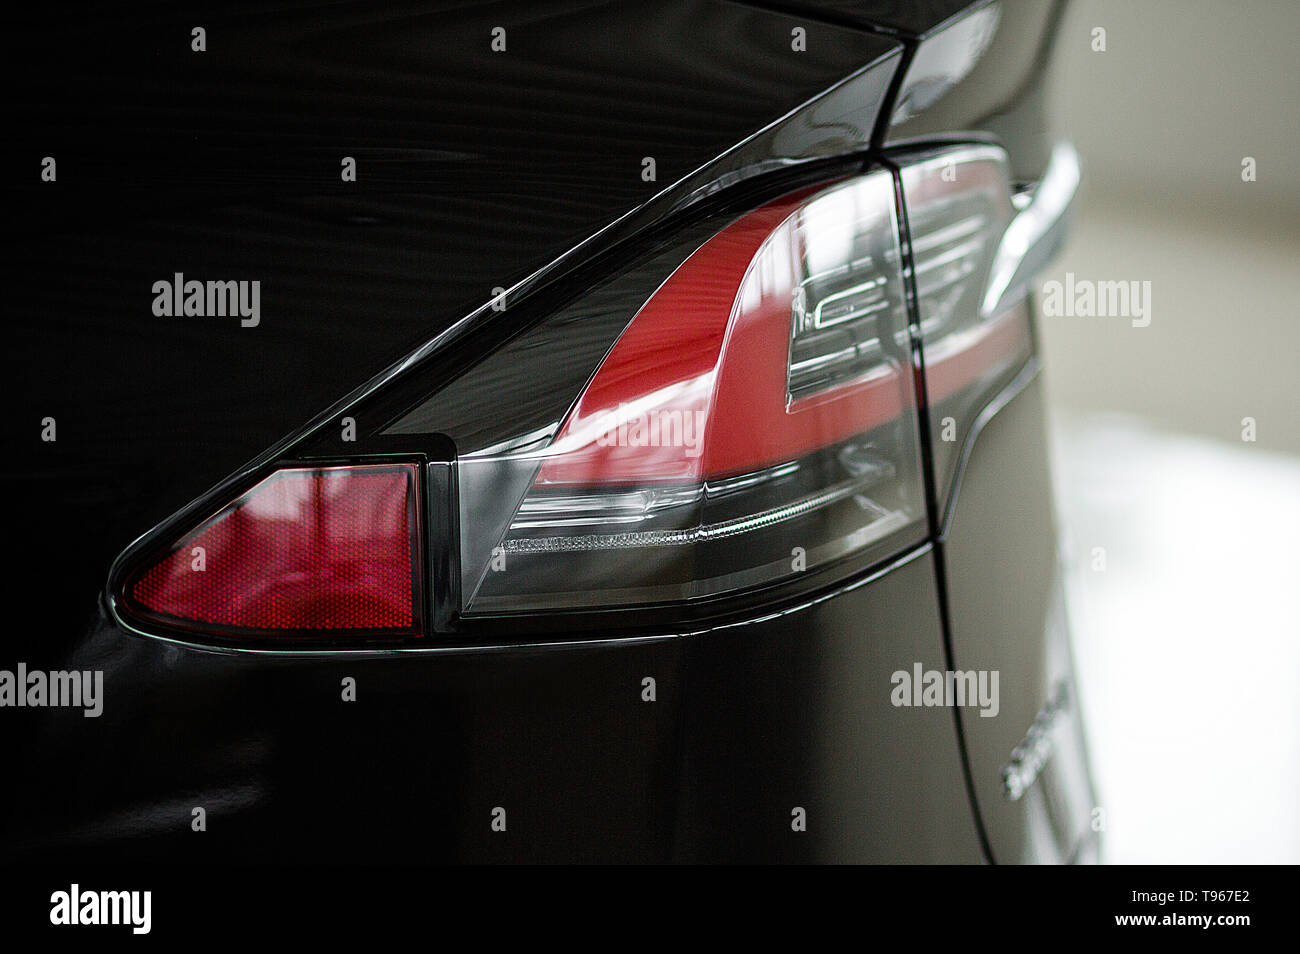 Red Rear Lights of Automobile Close-Up. Tail Lightening System of Beautiful Brand New Tesla in Black Color. Kyiv, Ukraine, F-Drive showroom 13 of febr - Stock Image